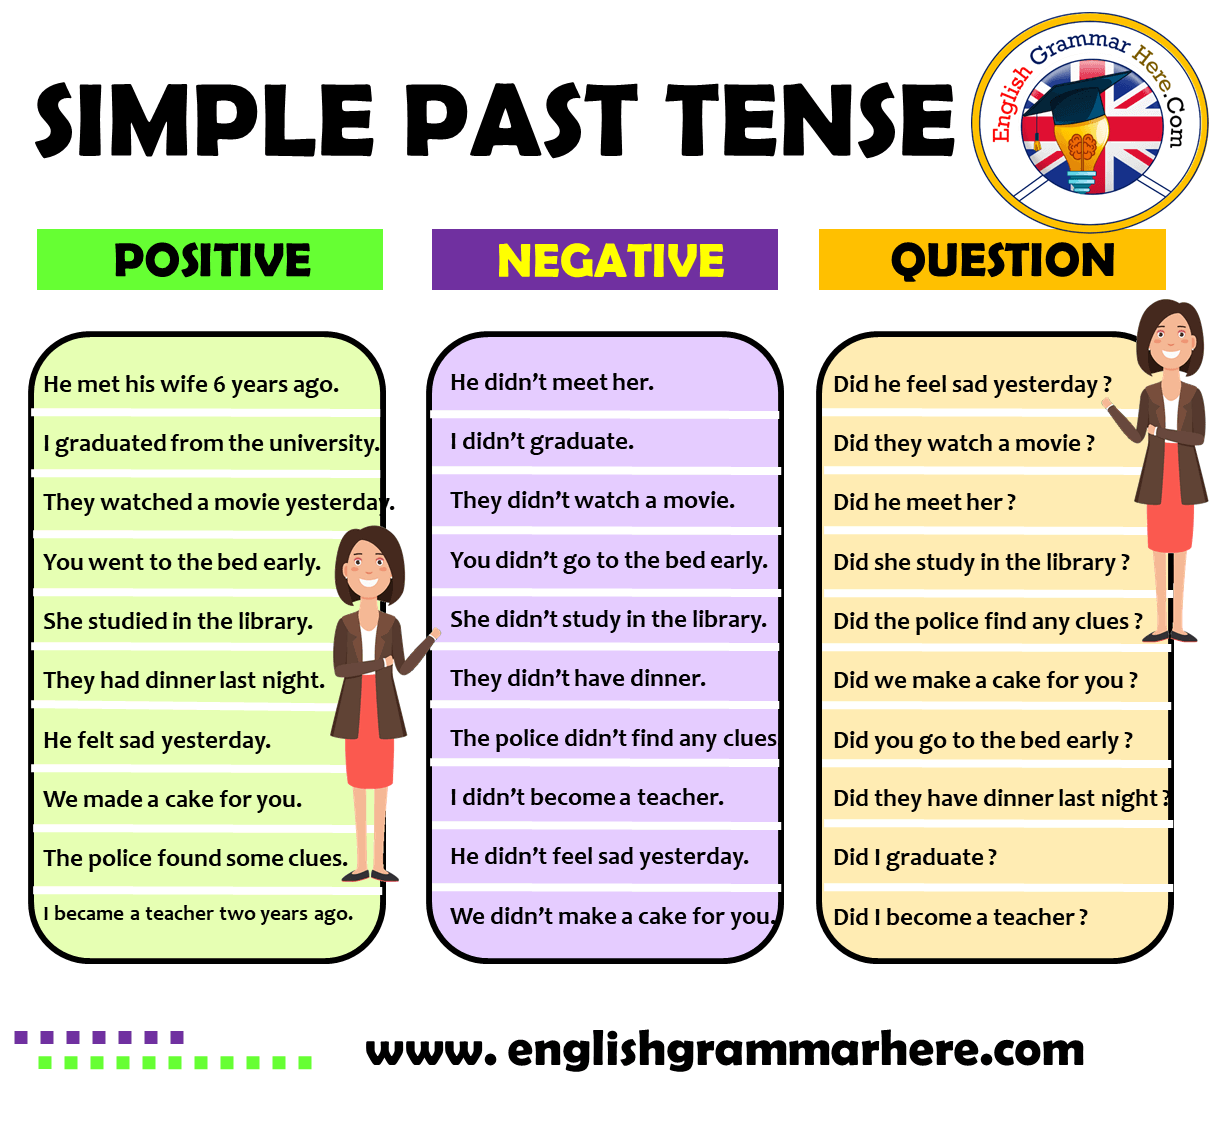 Simple Past Tense Positive Negative Question Examples